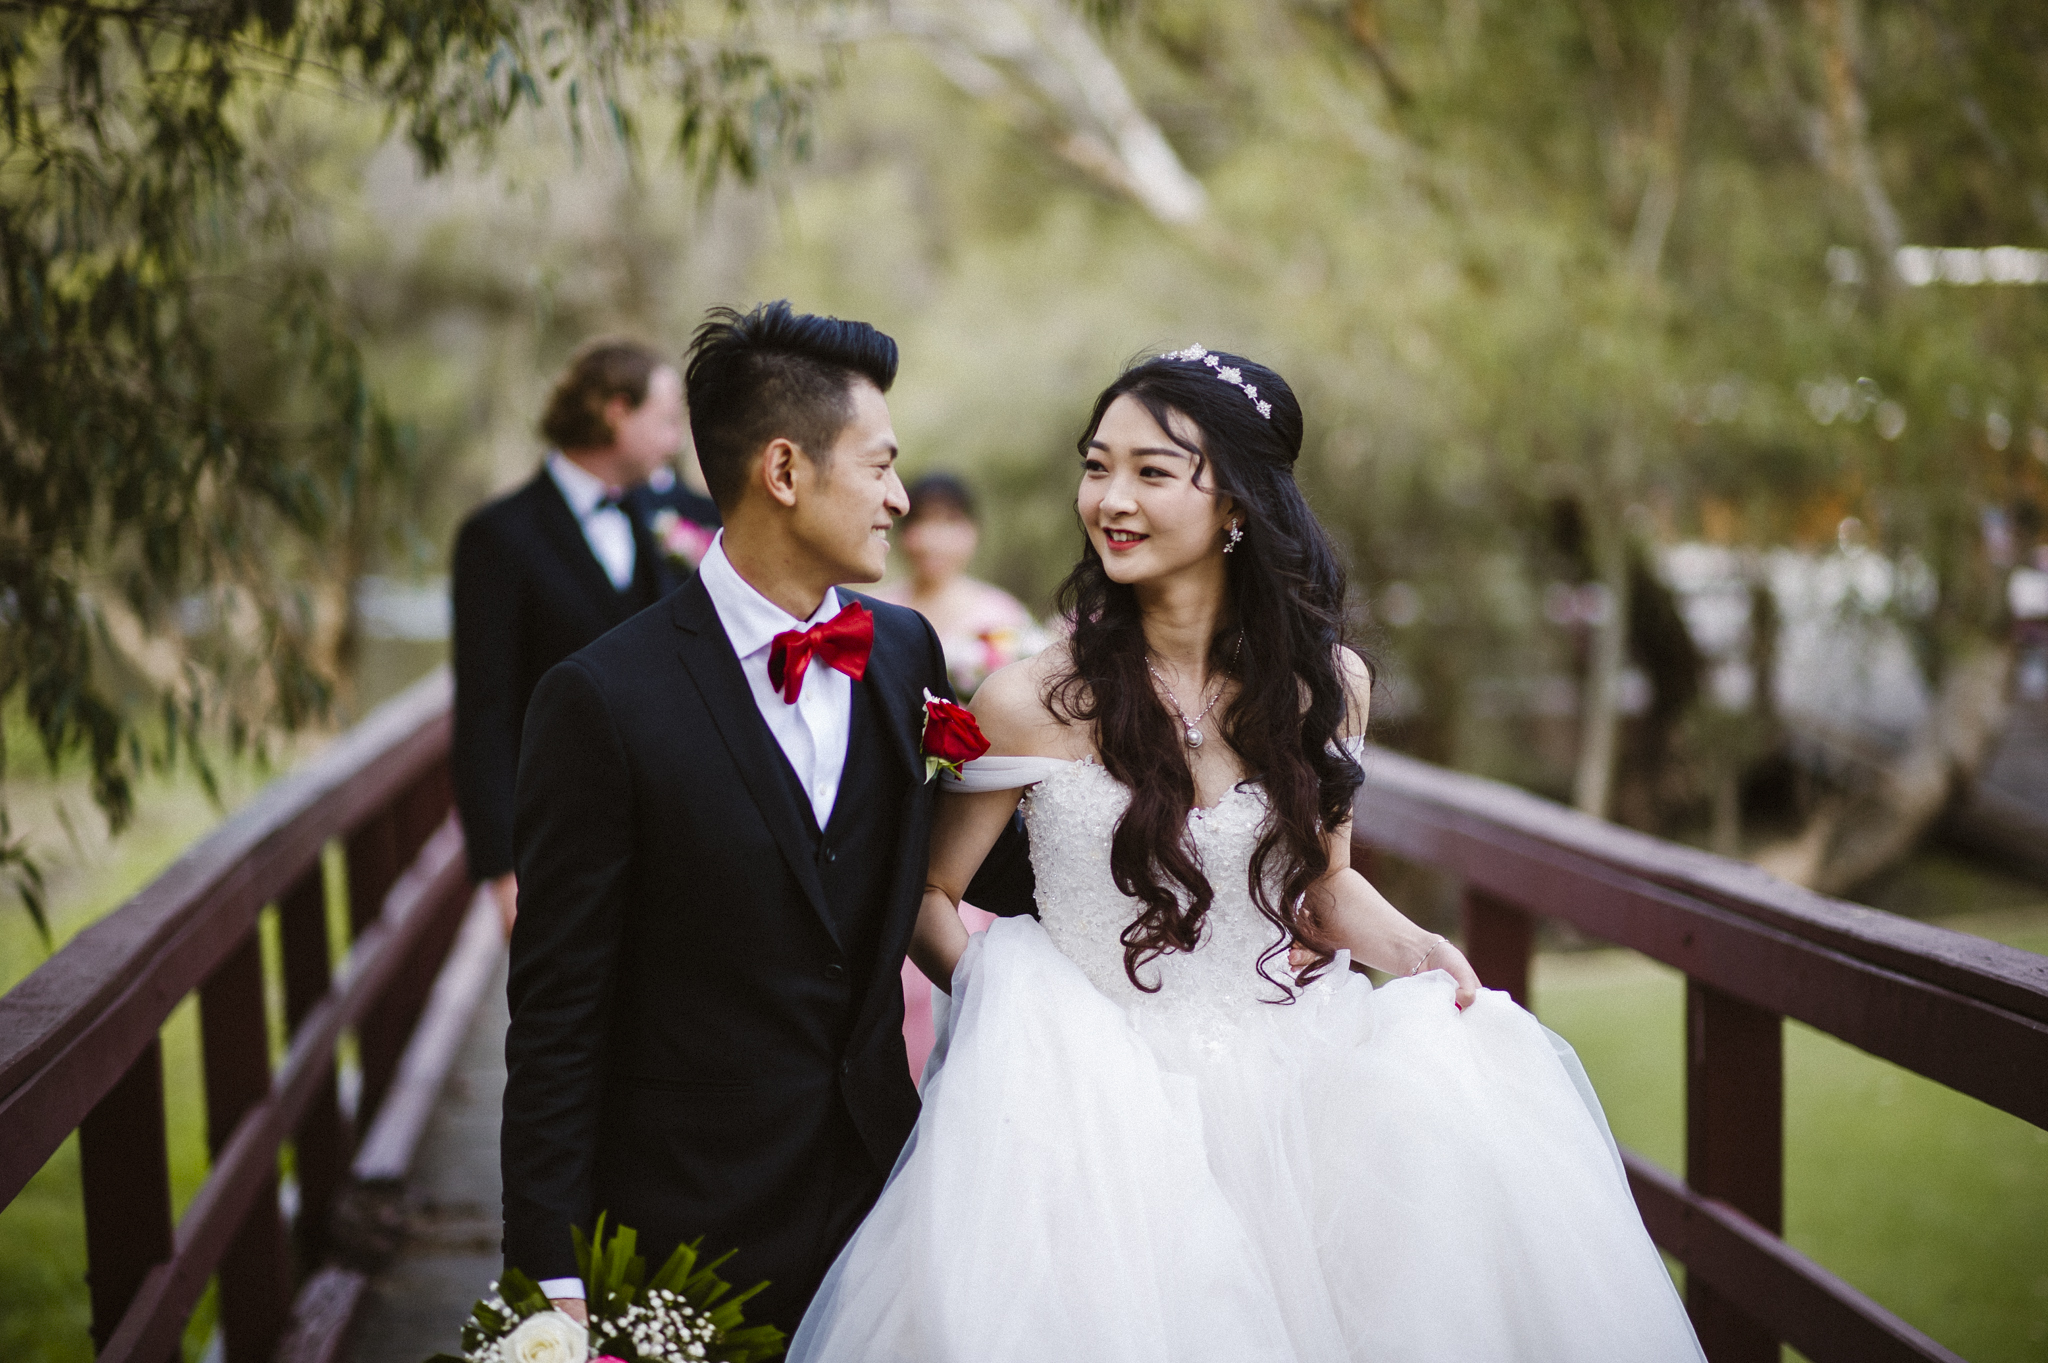 Caversham House and Dragon Palace Wedding - Z and Yanni - 100617 - Perth Wedding Photographer-0981